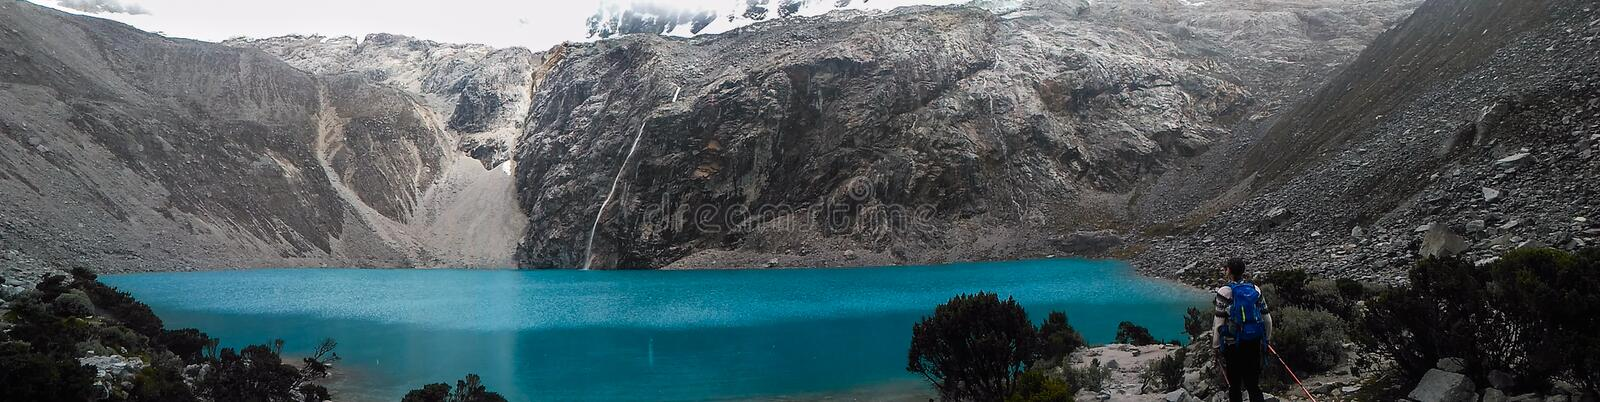 Turquoise lake laguna 69 located in White Cordillera in Peru. 'Laguna 69' is a breathtaking turquoise lake located in White Cordillera in Peru that stock photo